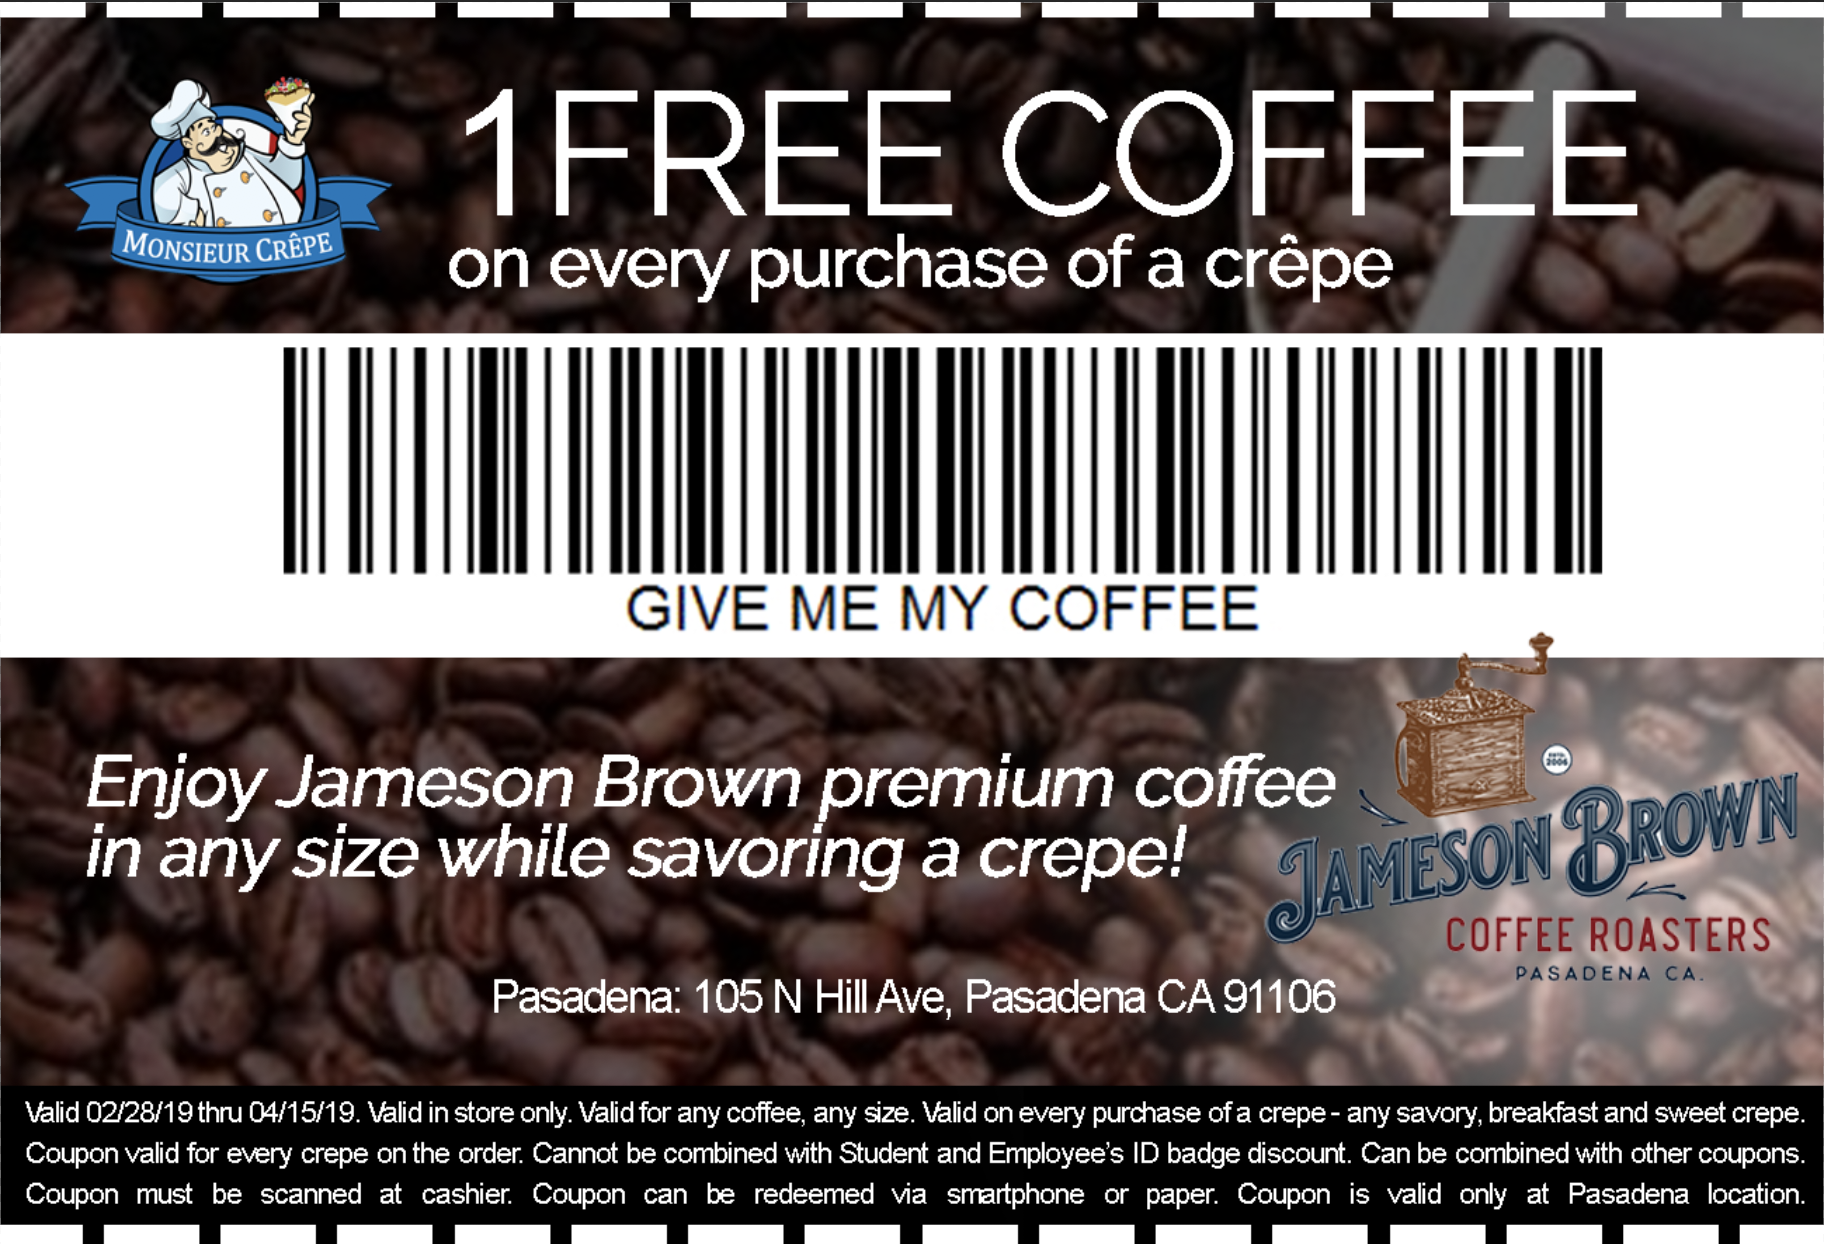 Coupon Monsieur Crepe 1 Free Coffee Promotion Discount.png